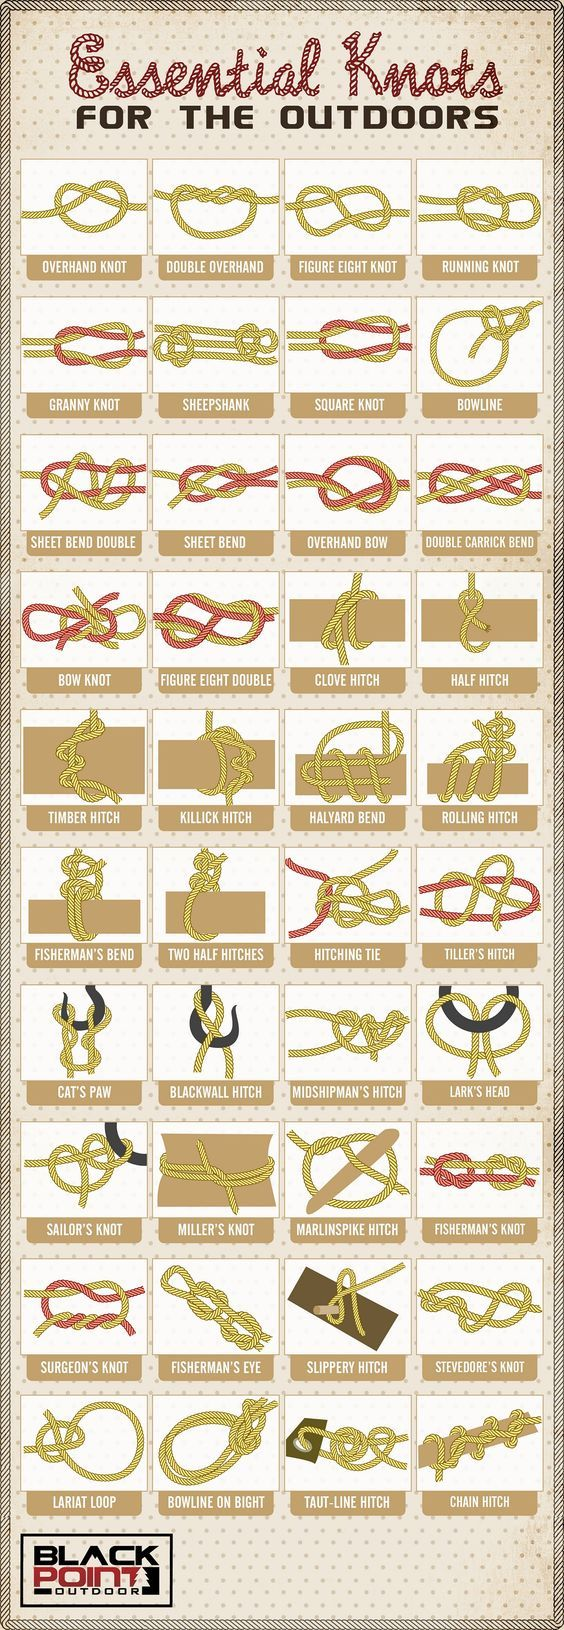 Essential knots knot tying knots of the outdoors sr yup i essential knots knot tying knots of the outdoors sr hexwebz Images